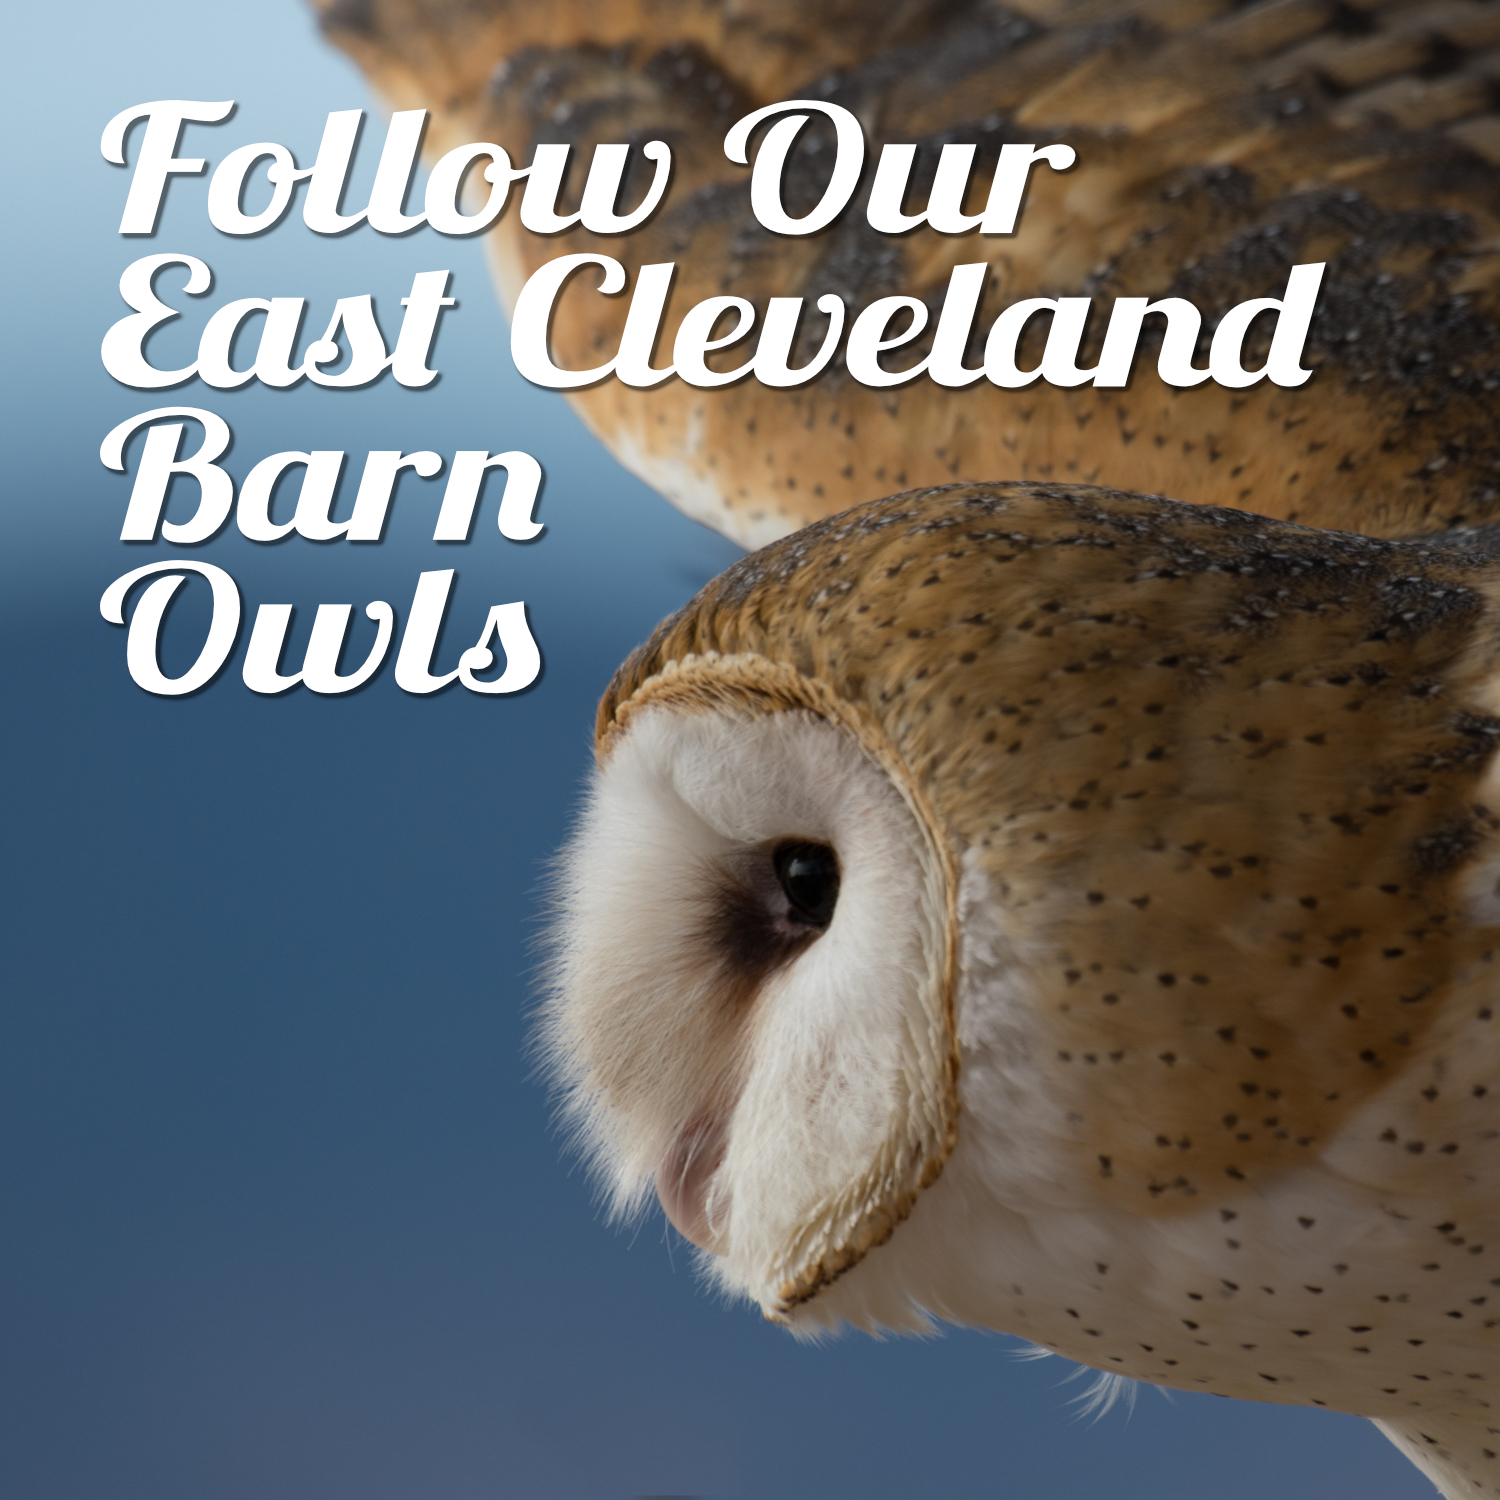 East Cleveland's barn owls are on the up!